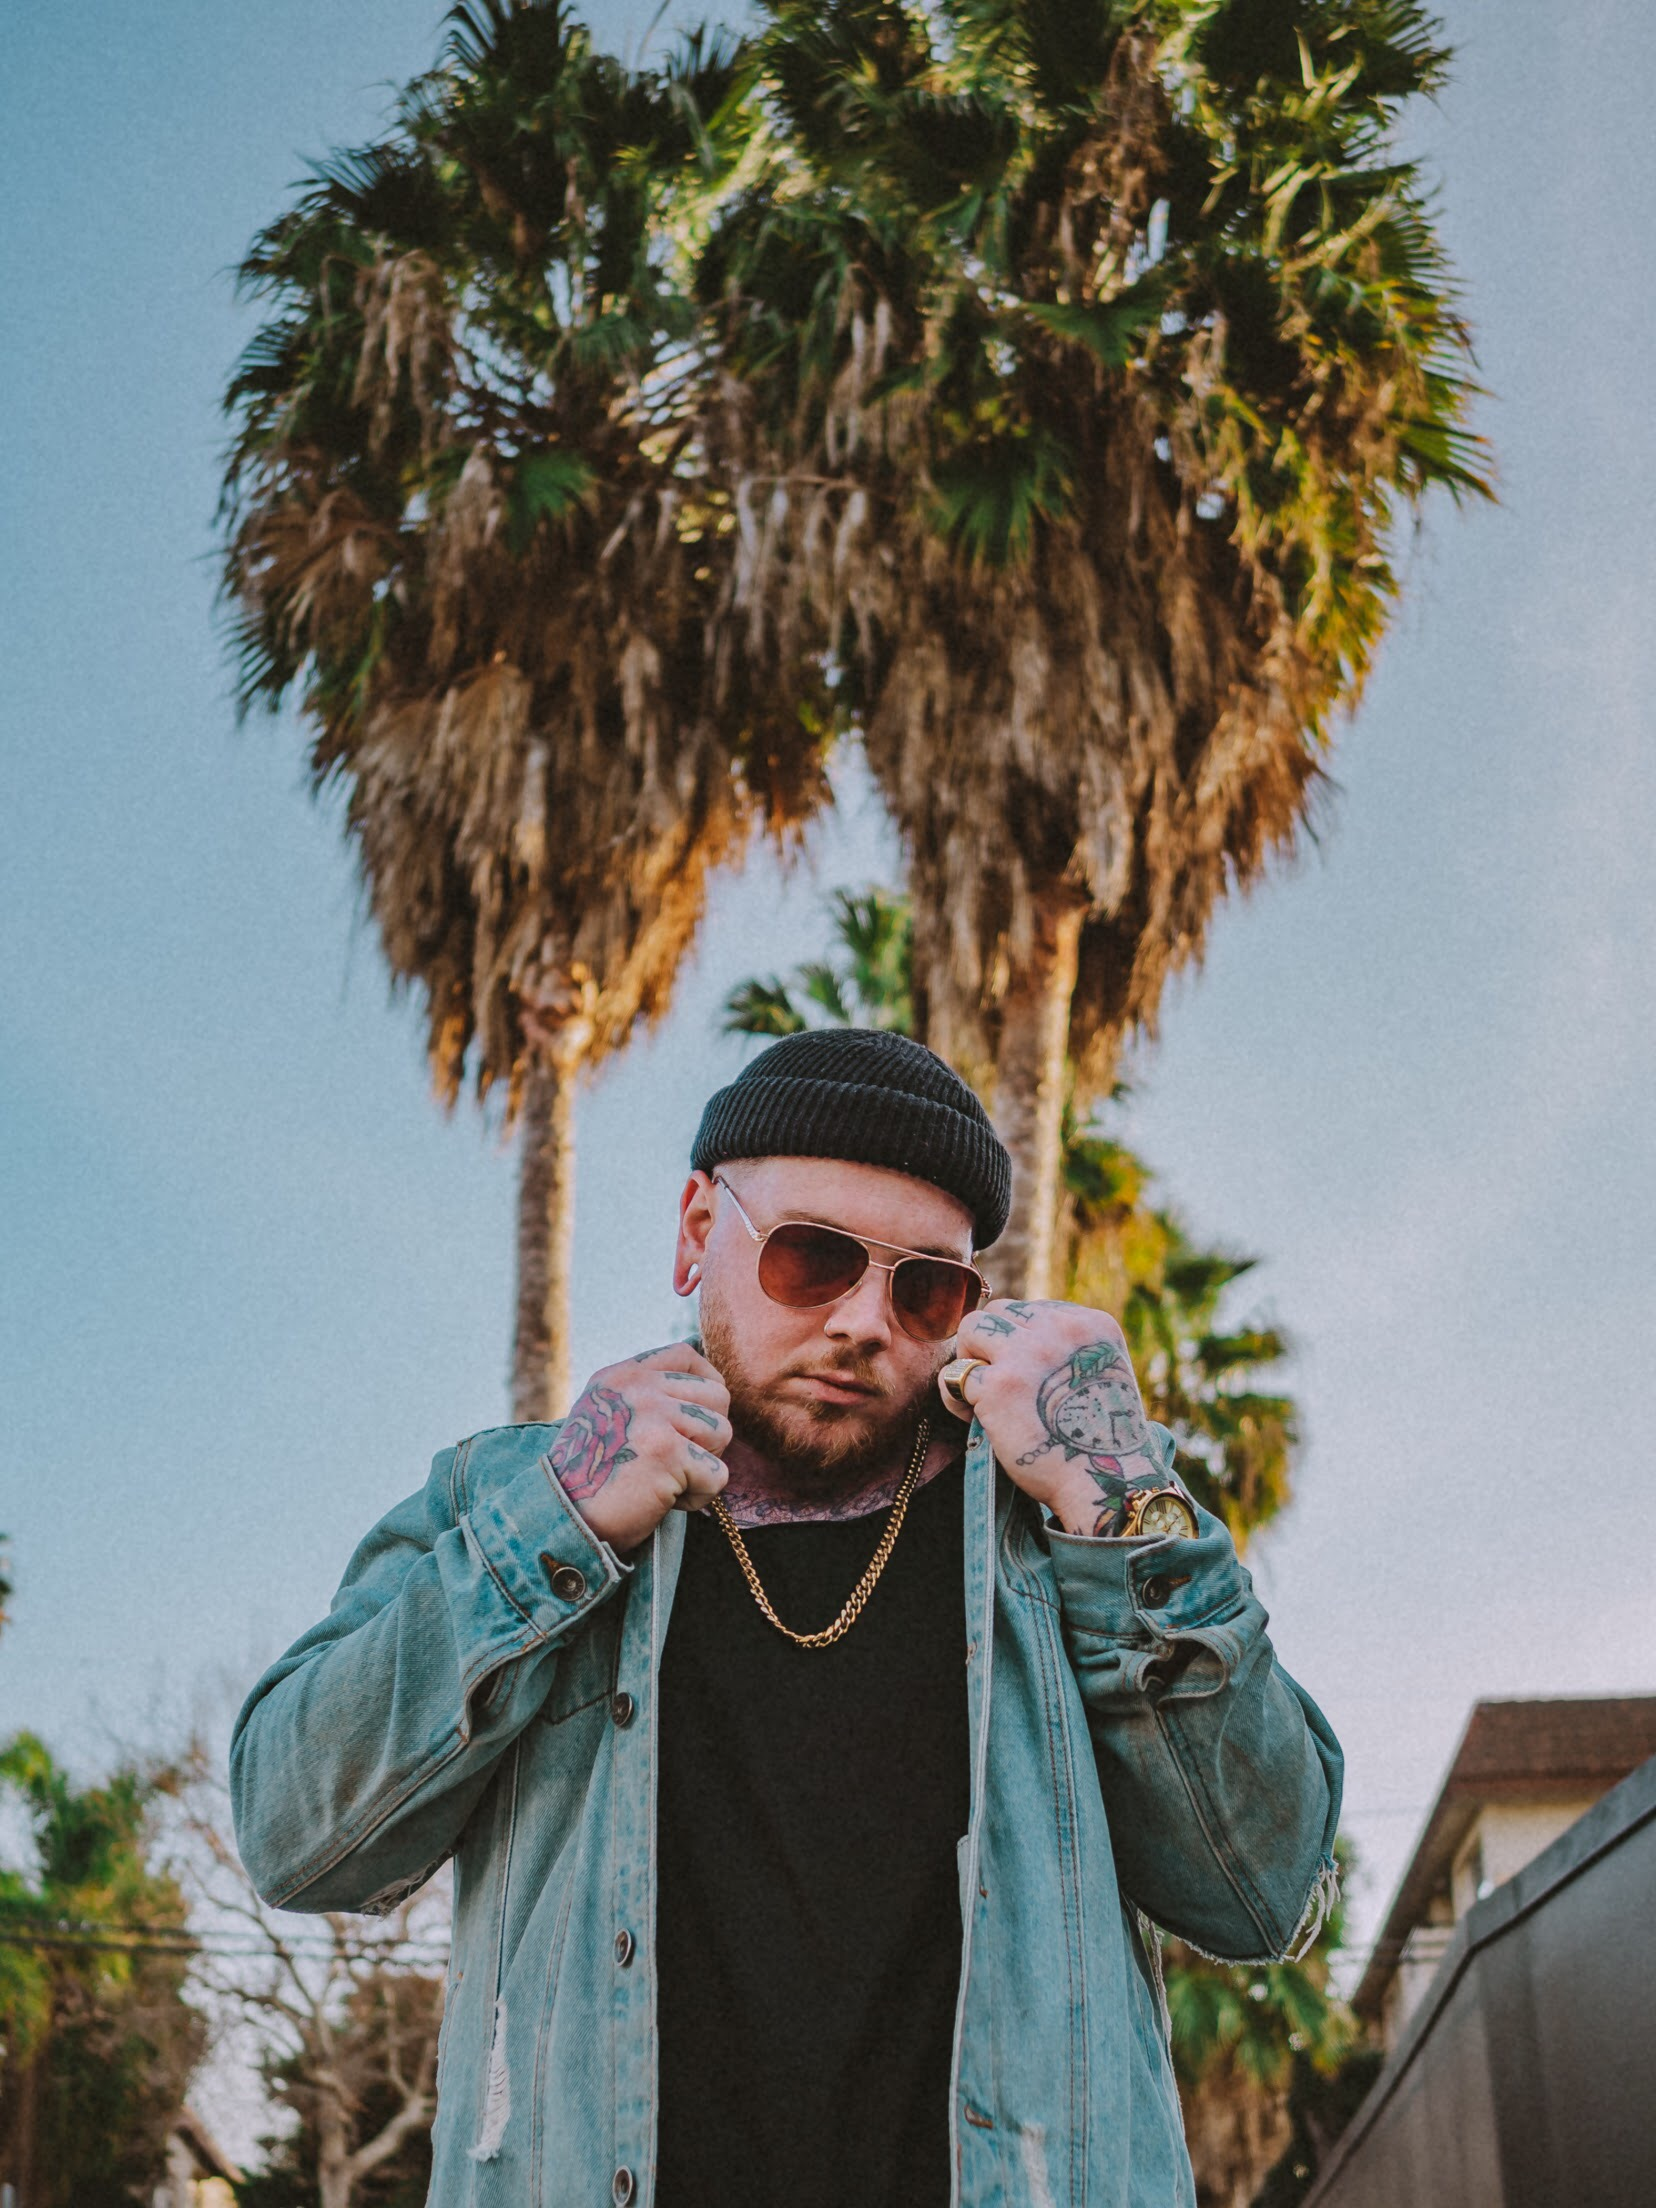 (New Exclusive Interview) Music Artist Bitter Bones Talks New Single With Vintage Media Group | @BitterBonesUSA